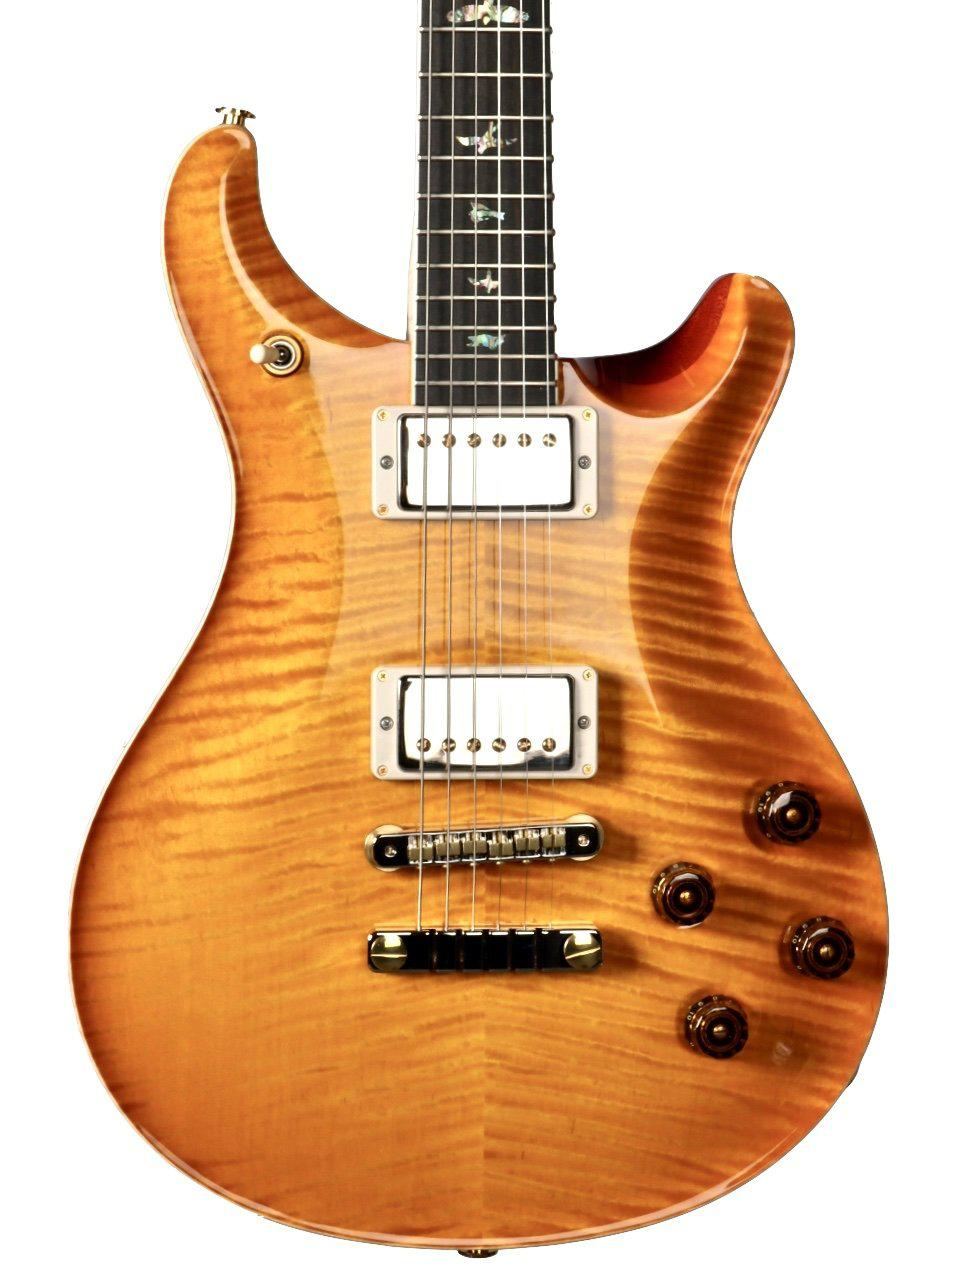 PRS McCarty 594  Artist Pack Flamed Maple Neck Pattern Vintage McCarty Sunburst - Paul Reed Smith Guitars - Heartbreaker Guitars